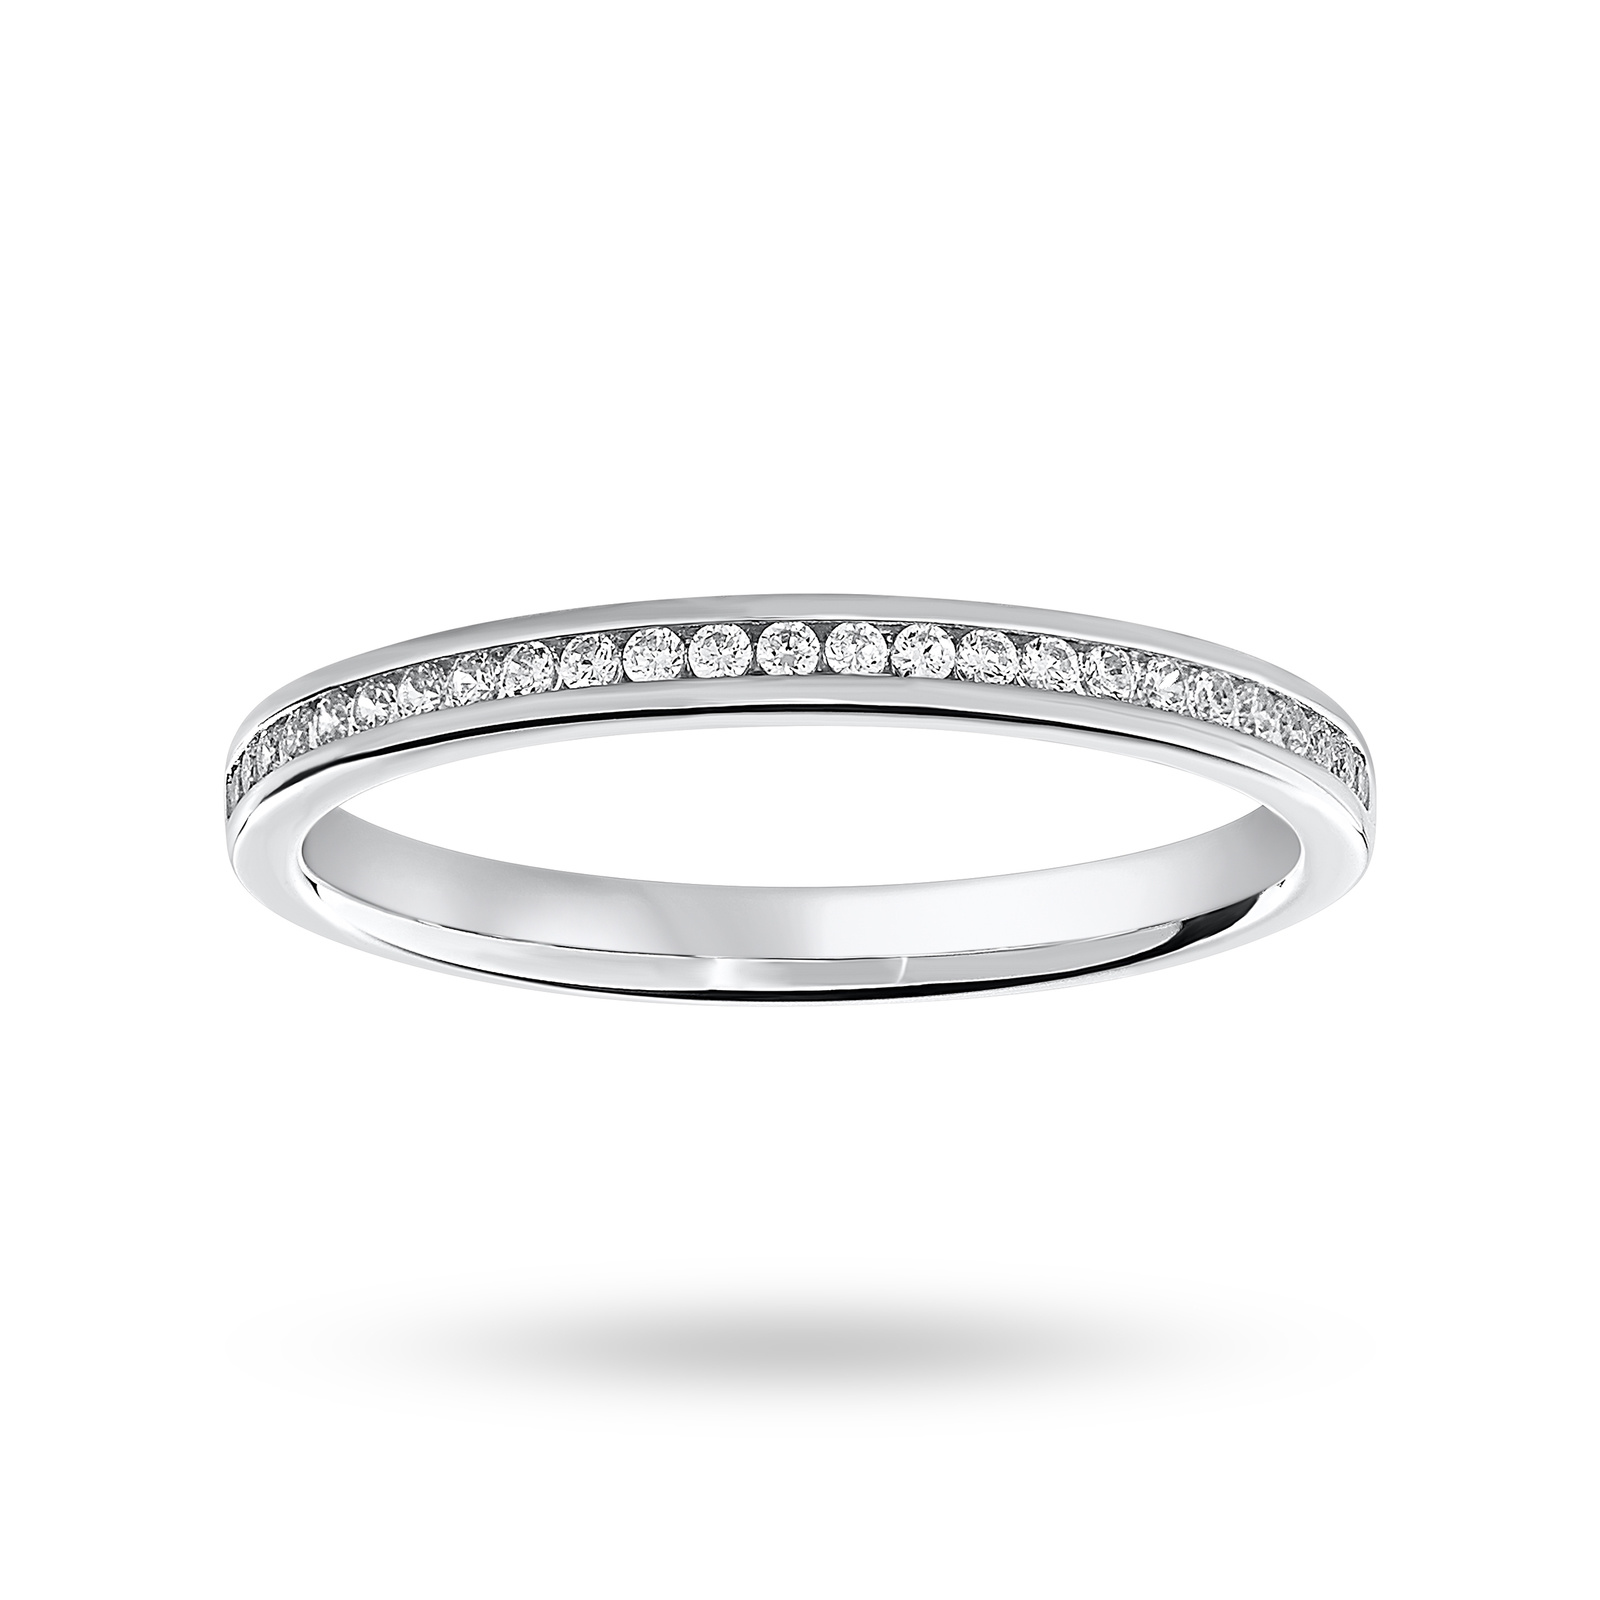 18ct White Gold 0.12ct Half Eternity Ring - Ring Size H.5